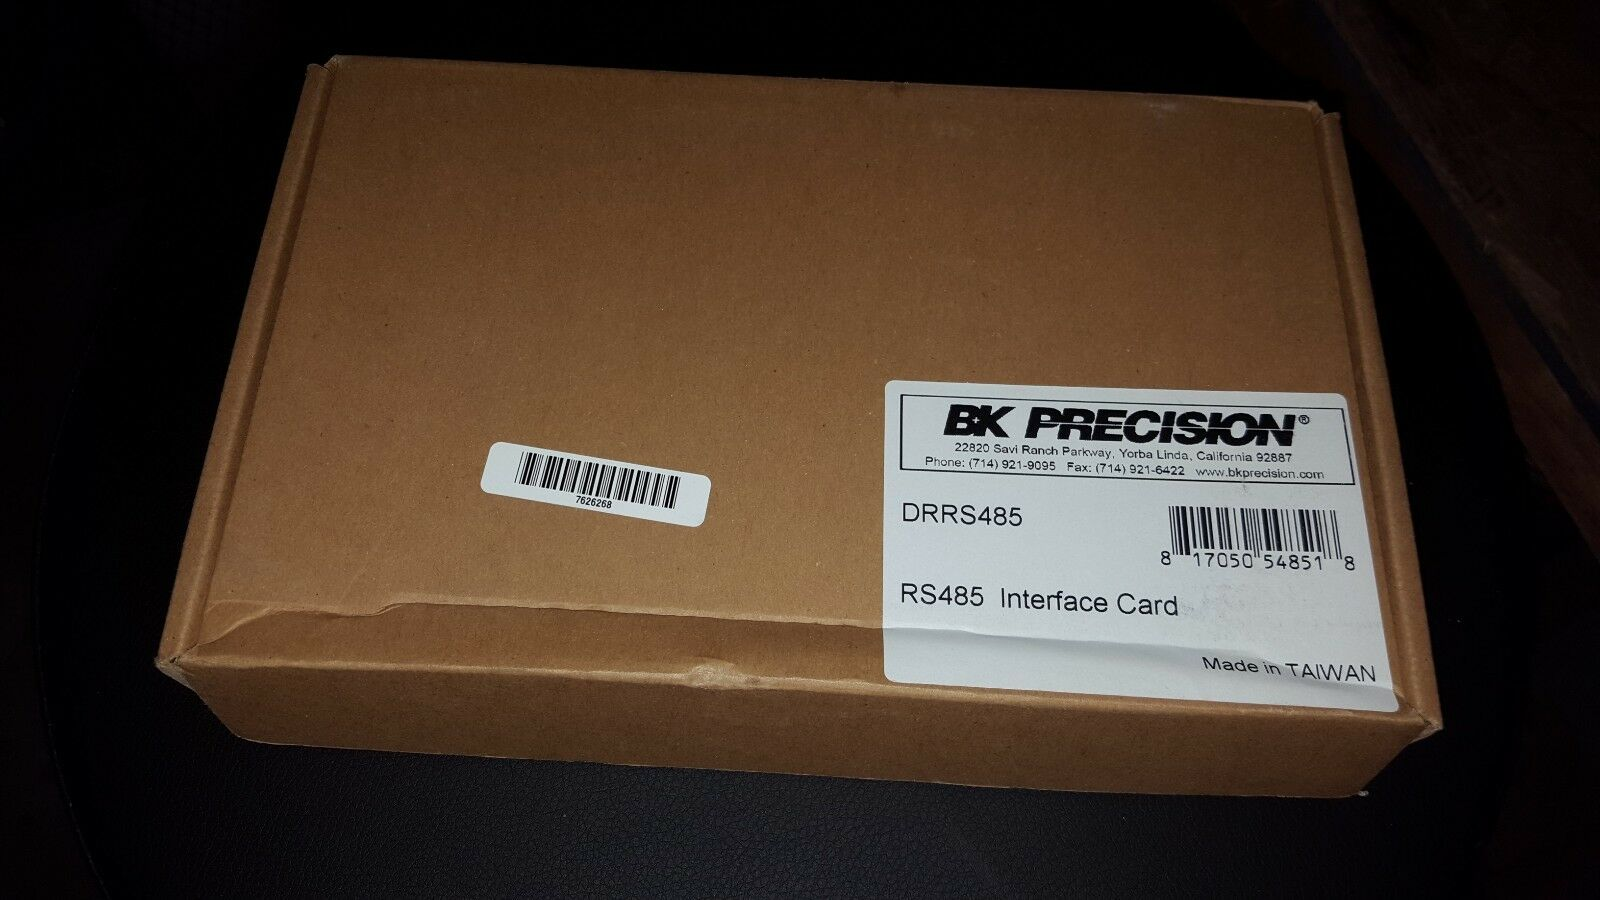 BK Precision DRRS485 RS485 Interface Card